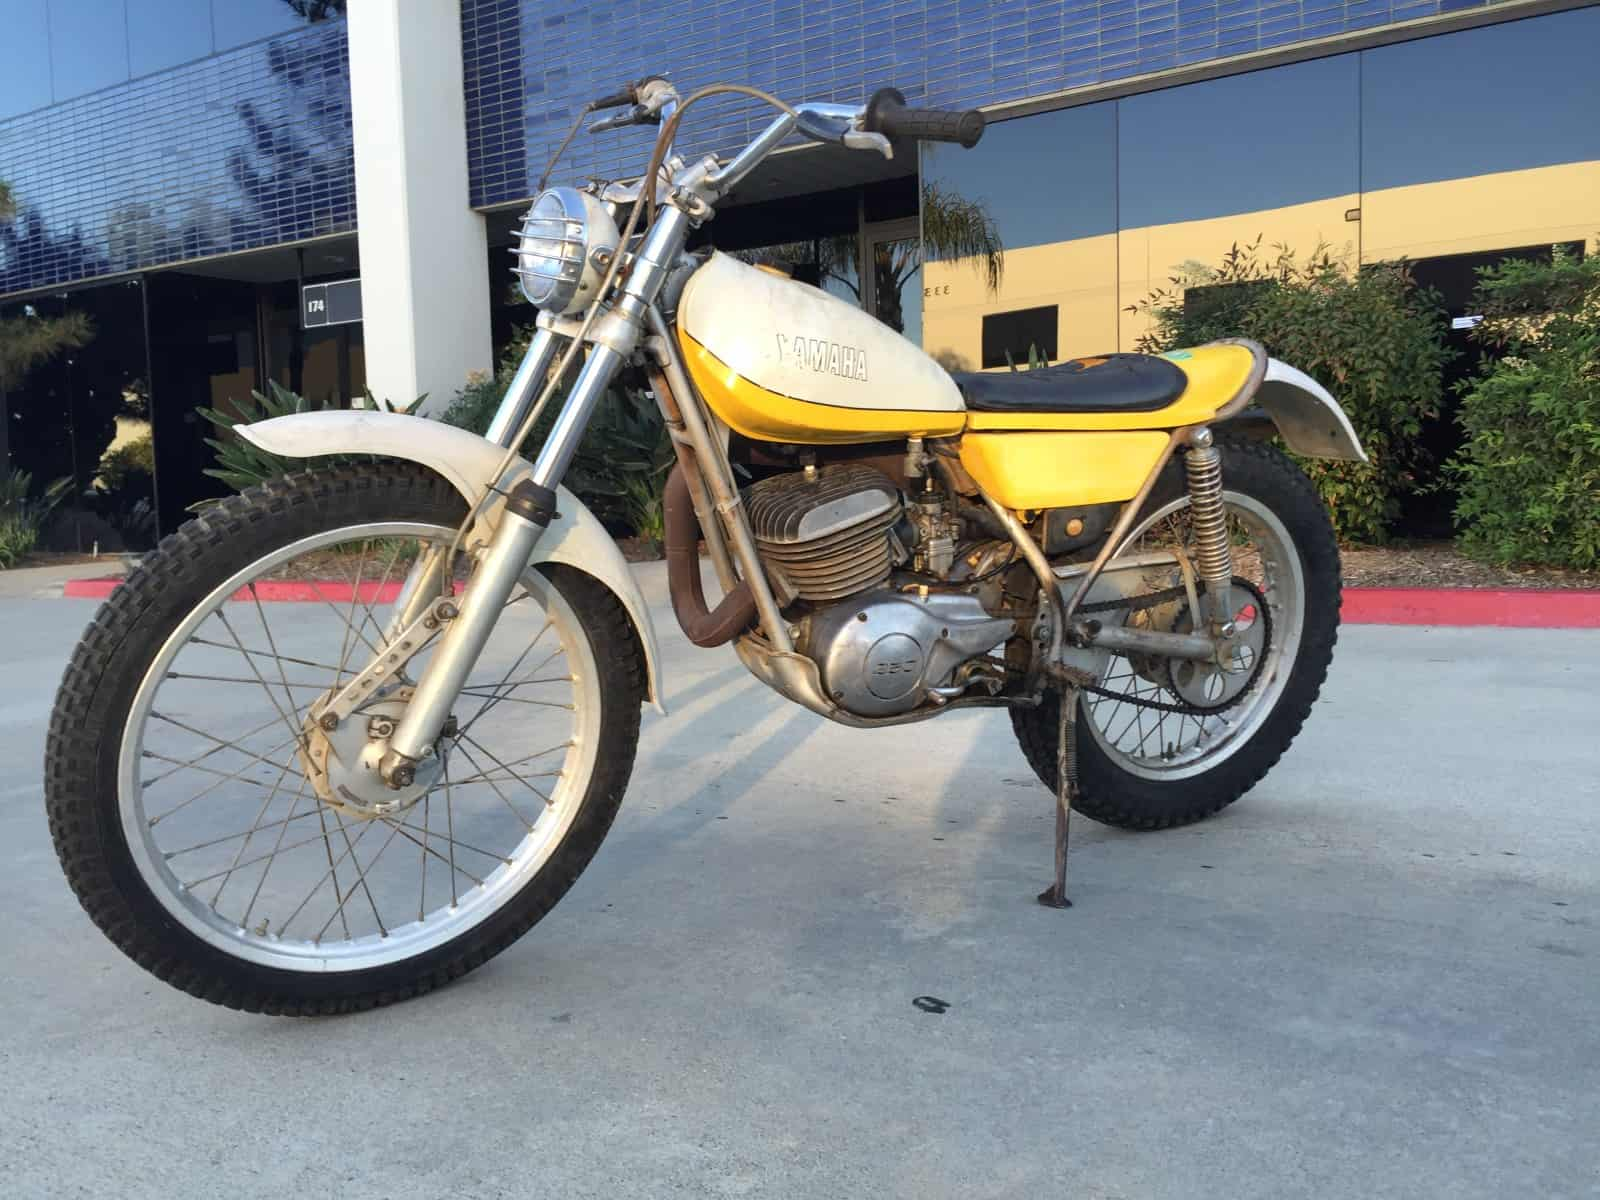 Yamaha 1974 Ty 250 Trials Bike For Sale Carpy S Cafe Racers